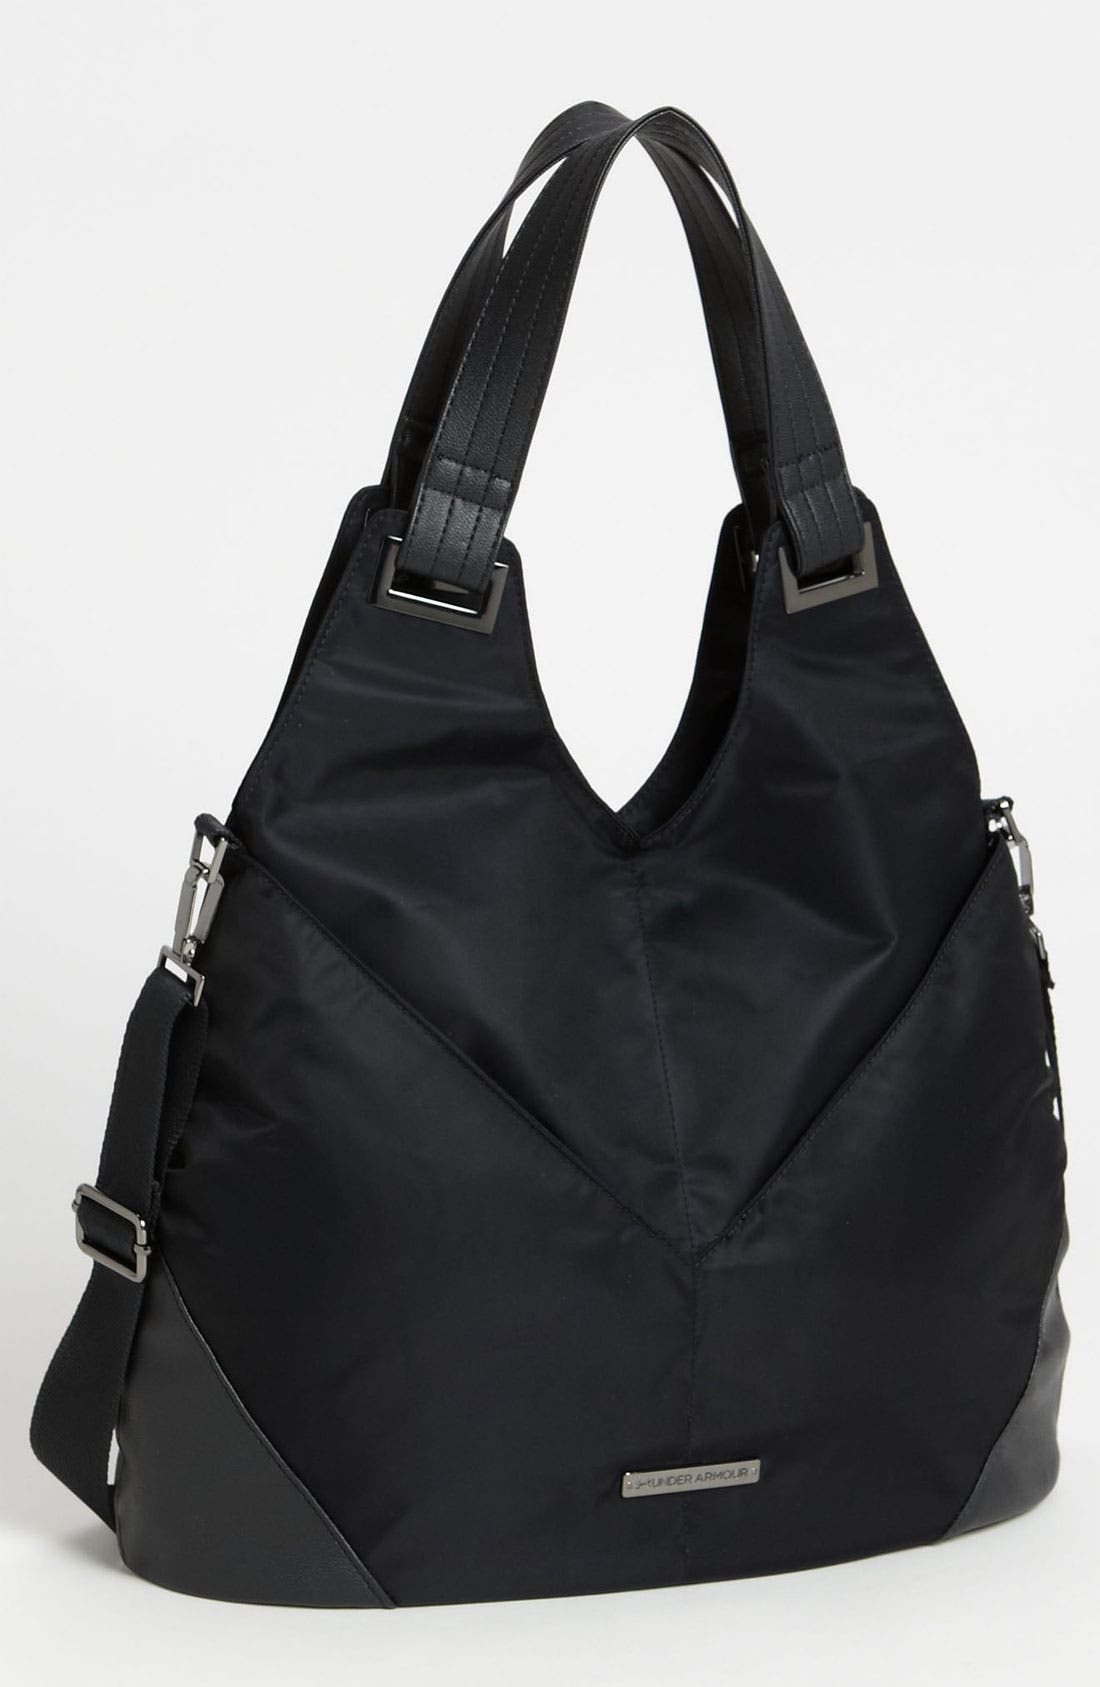 Alternate Image 1 Selected - Under Armour 'Perfect' Bag